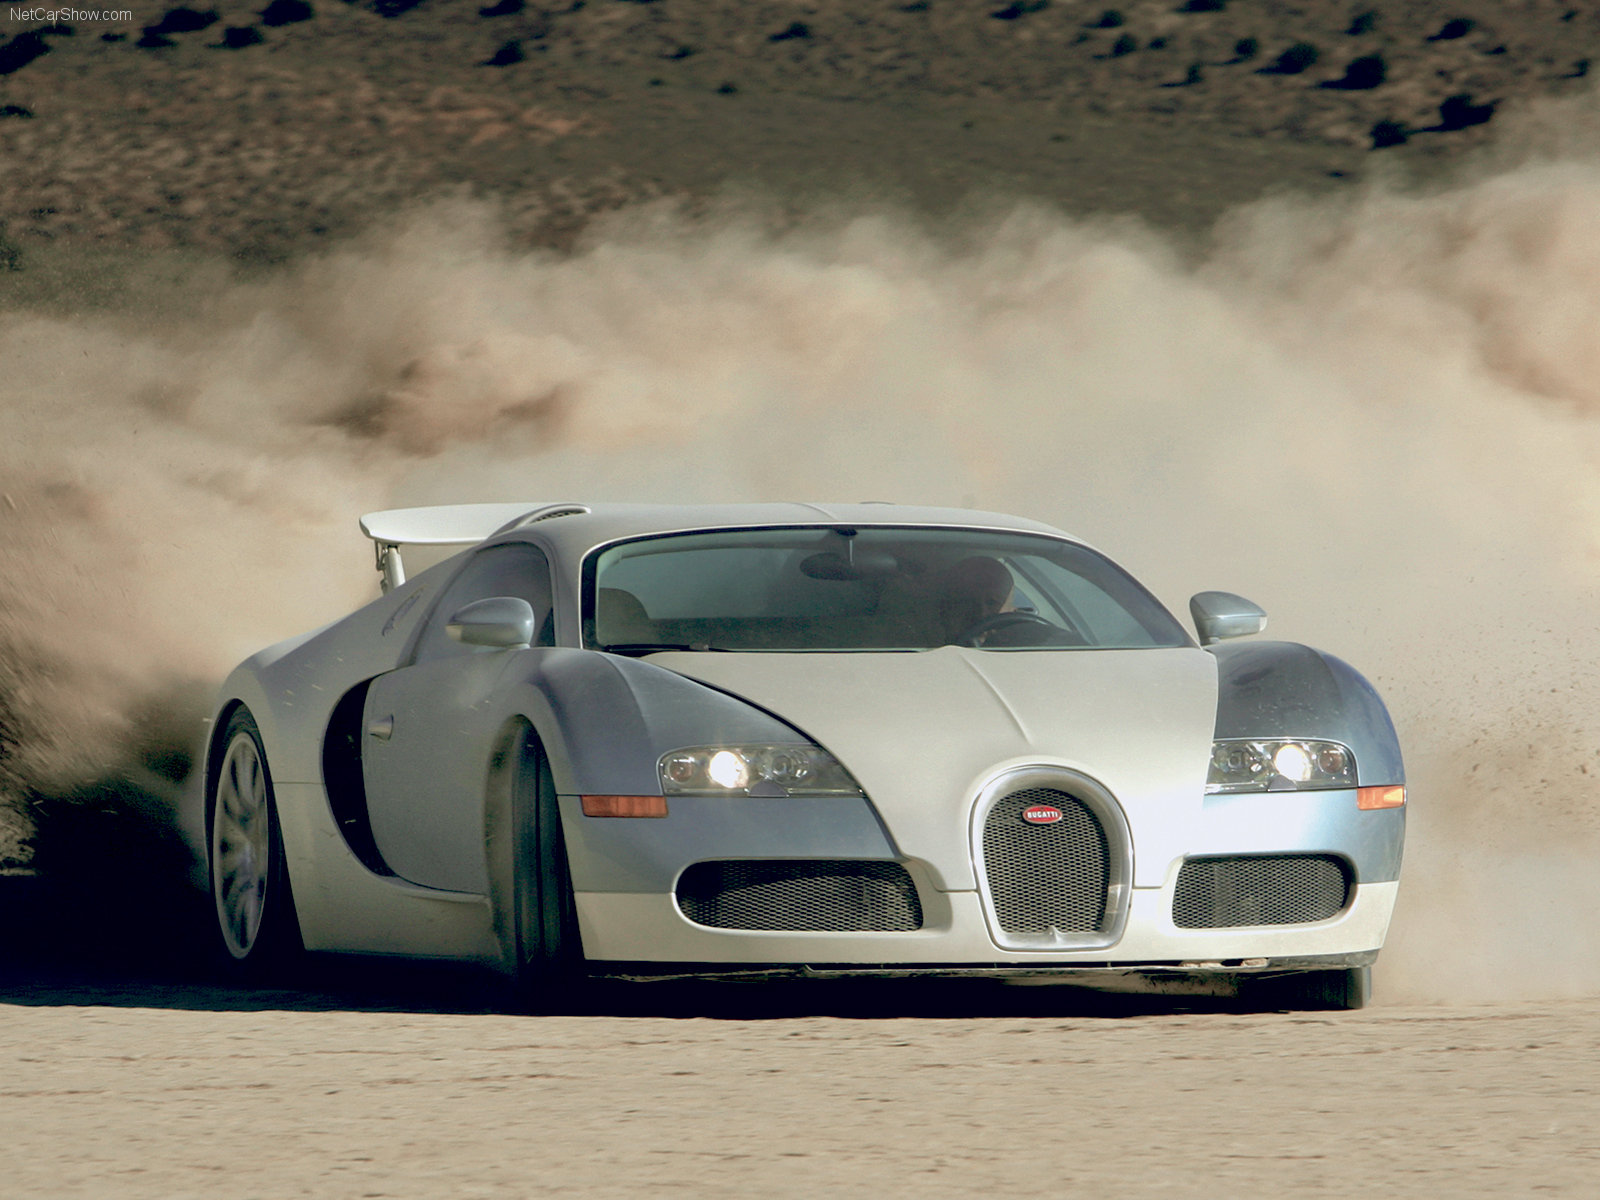 BUGATTI VEYRON HD WALLPAPERS FREE HD WALLPAPERS 1600x1200